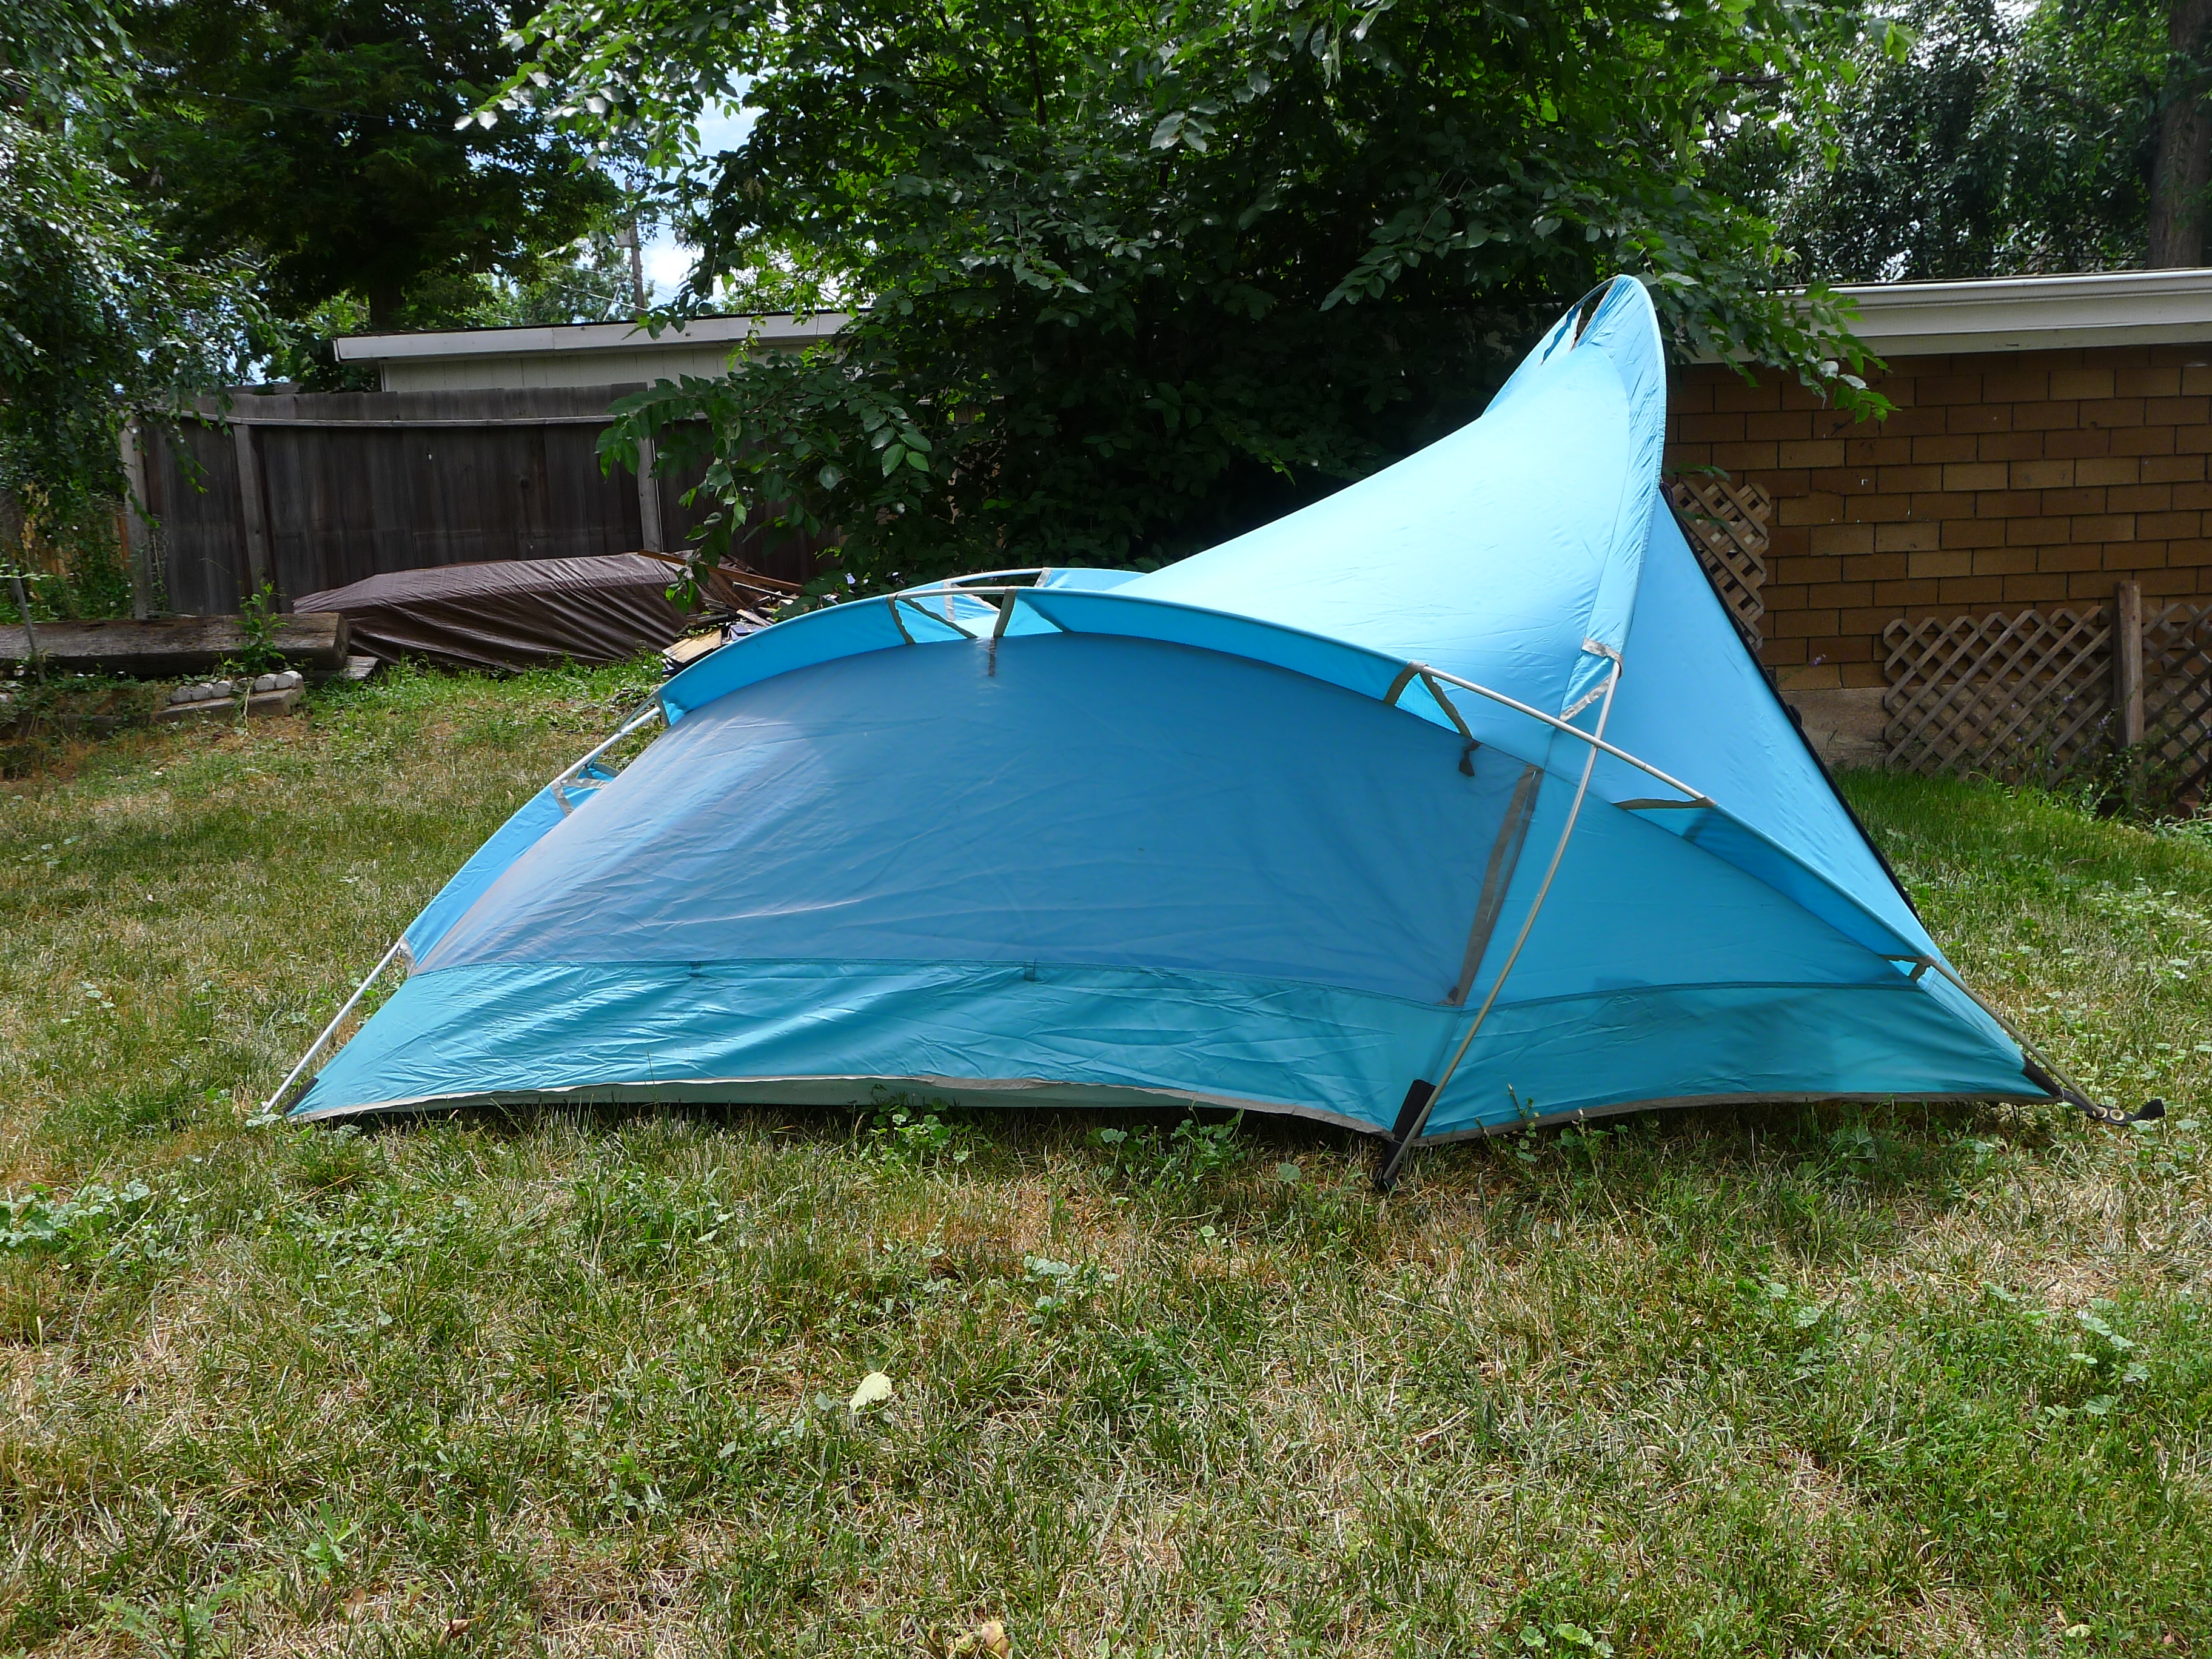 Vintage The North Face Brown Label Bullfrog Two Man Backpacking Tent : backpacking tents made in usa - memphite.com